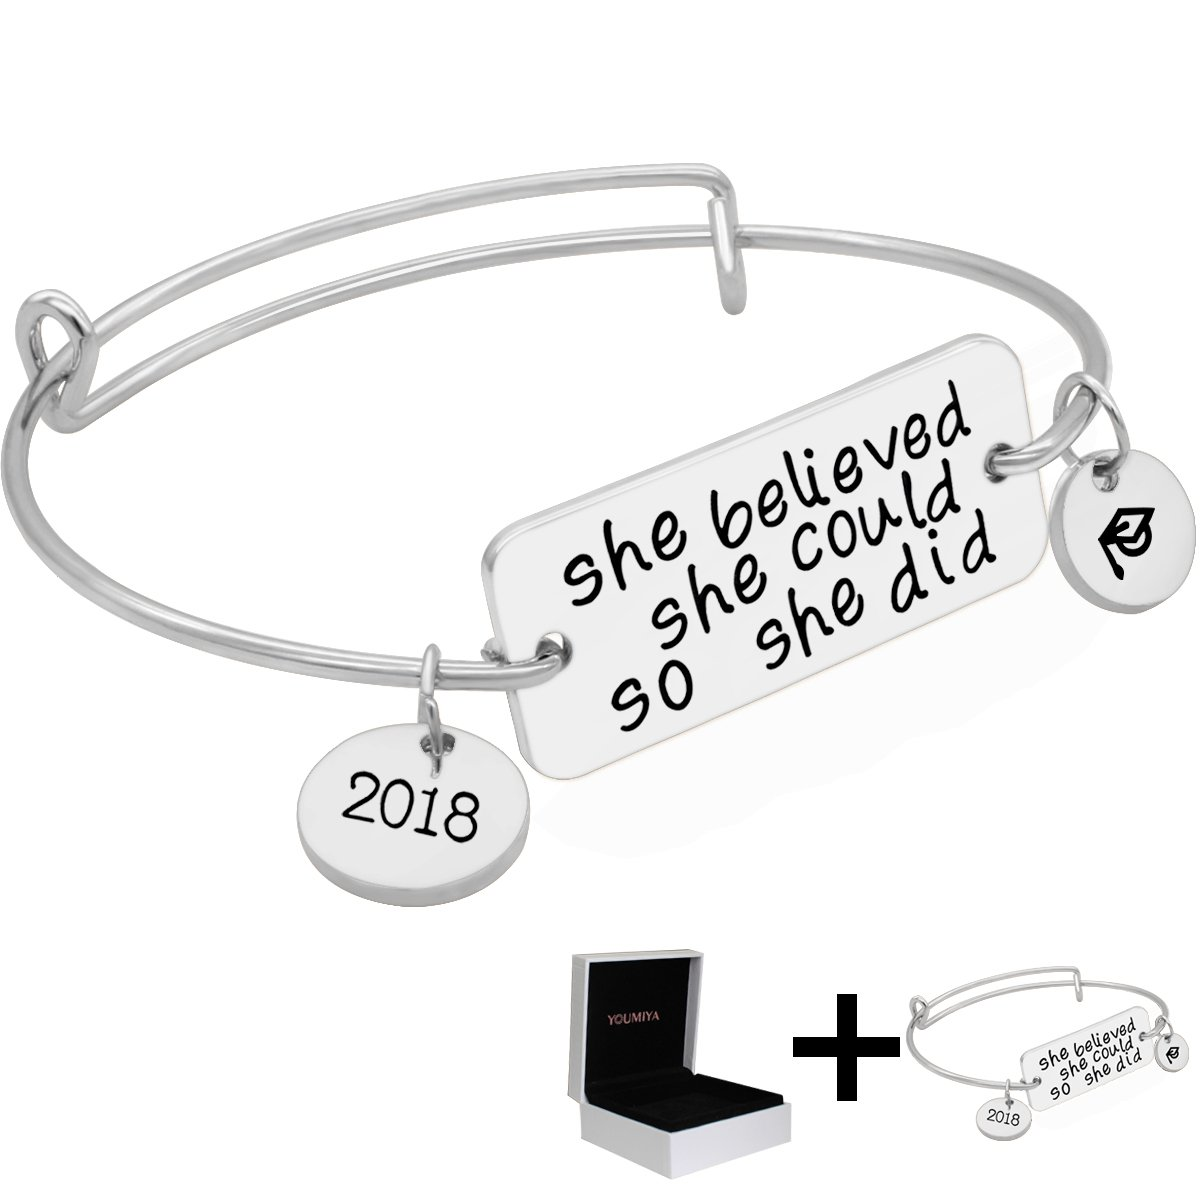 Gold Bracelet Jewelry Graduation Gifts - YouMiYa 2018 Inspirational Bracelets Series She Believed She Could So She Did Adjustable Bracelet Bangle For Women (Silver With Box)